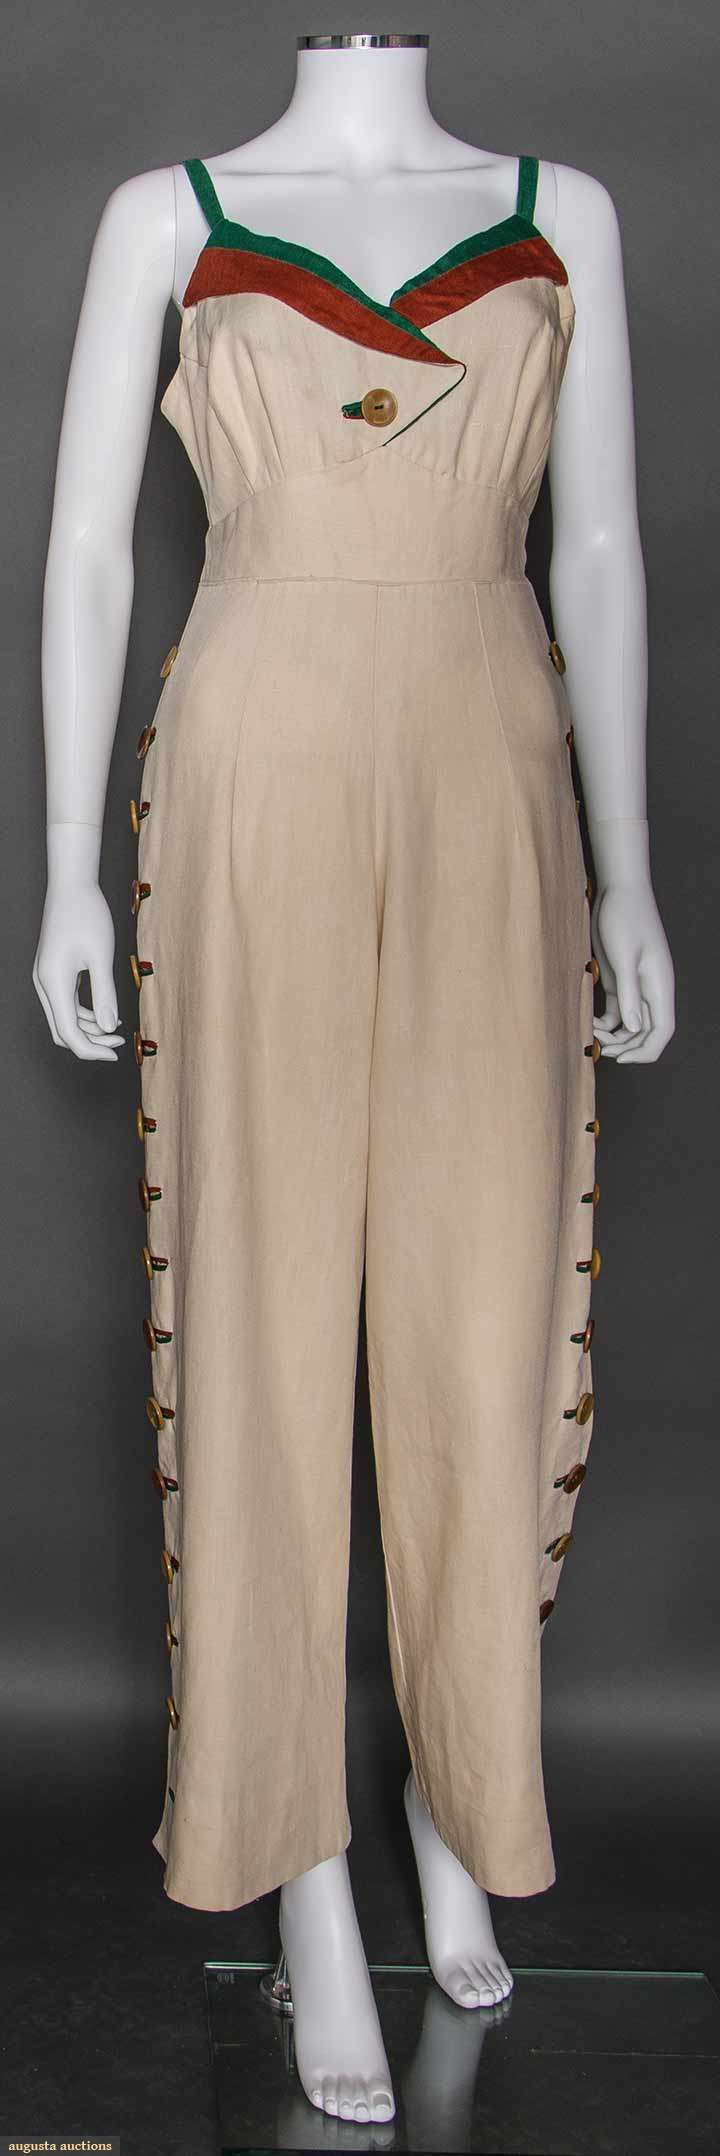 LINEN TRI-COLOR PLAY SUIT, 1930s Cream linen & rayon jumpsuit & jacket, bodice trimmed w/ green & rust linen, narrow straps to bra back, wide leg pants w/ sides trimmed w/ large buttons, matching short fitted jacket, sleeves w/ same button details